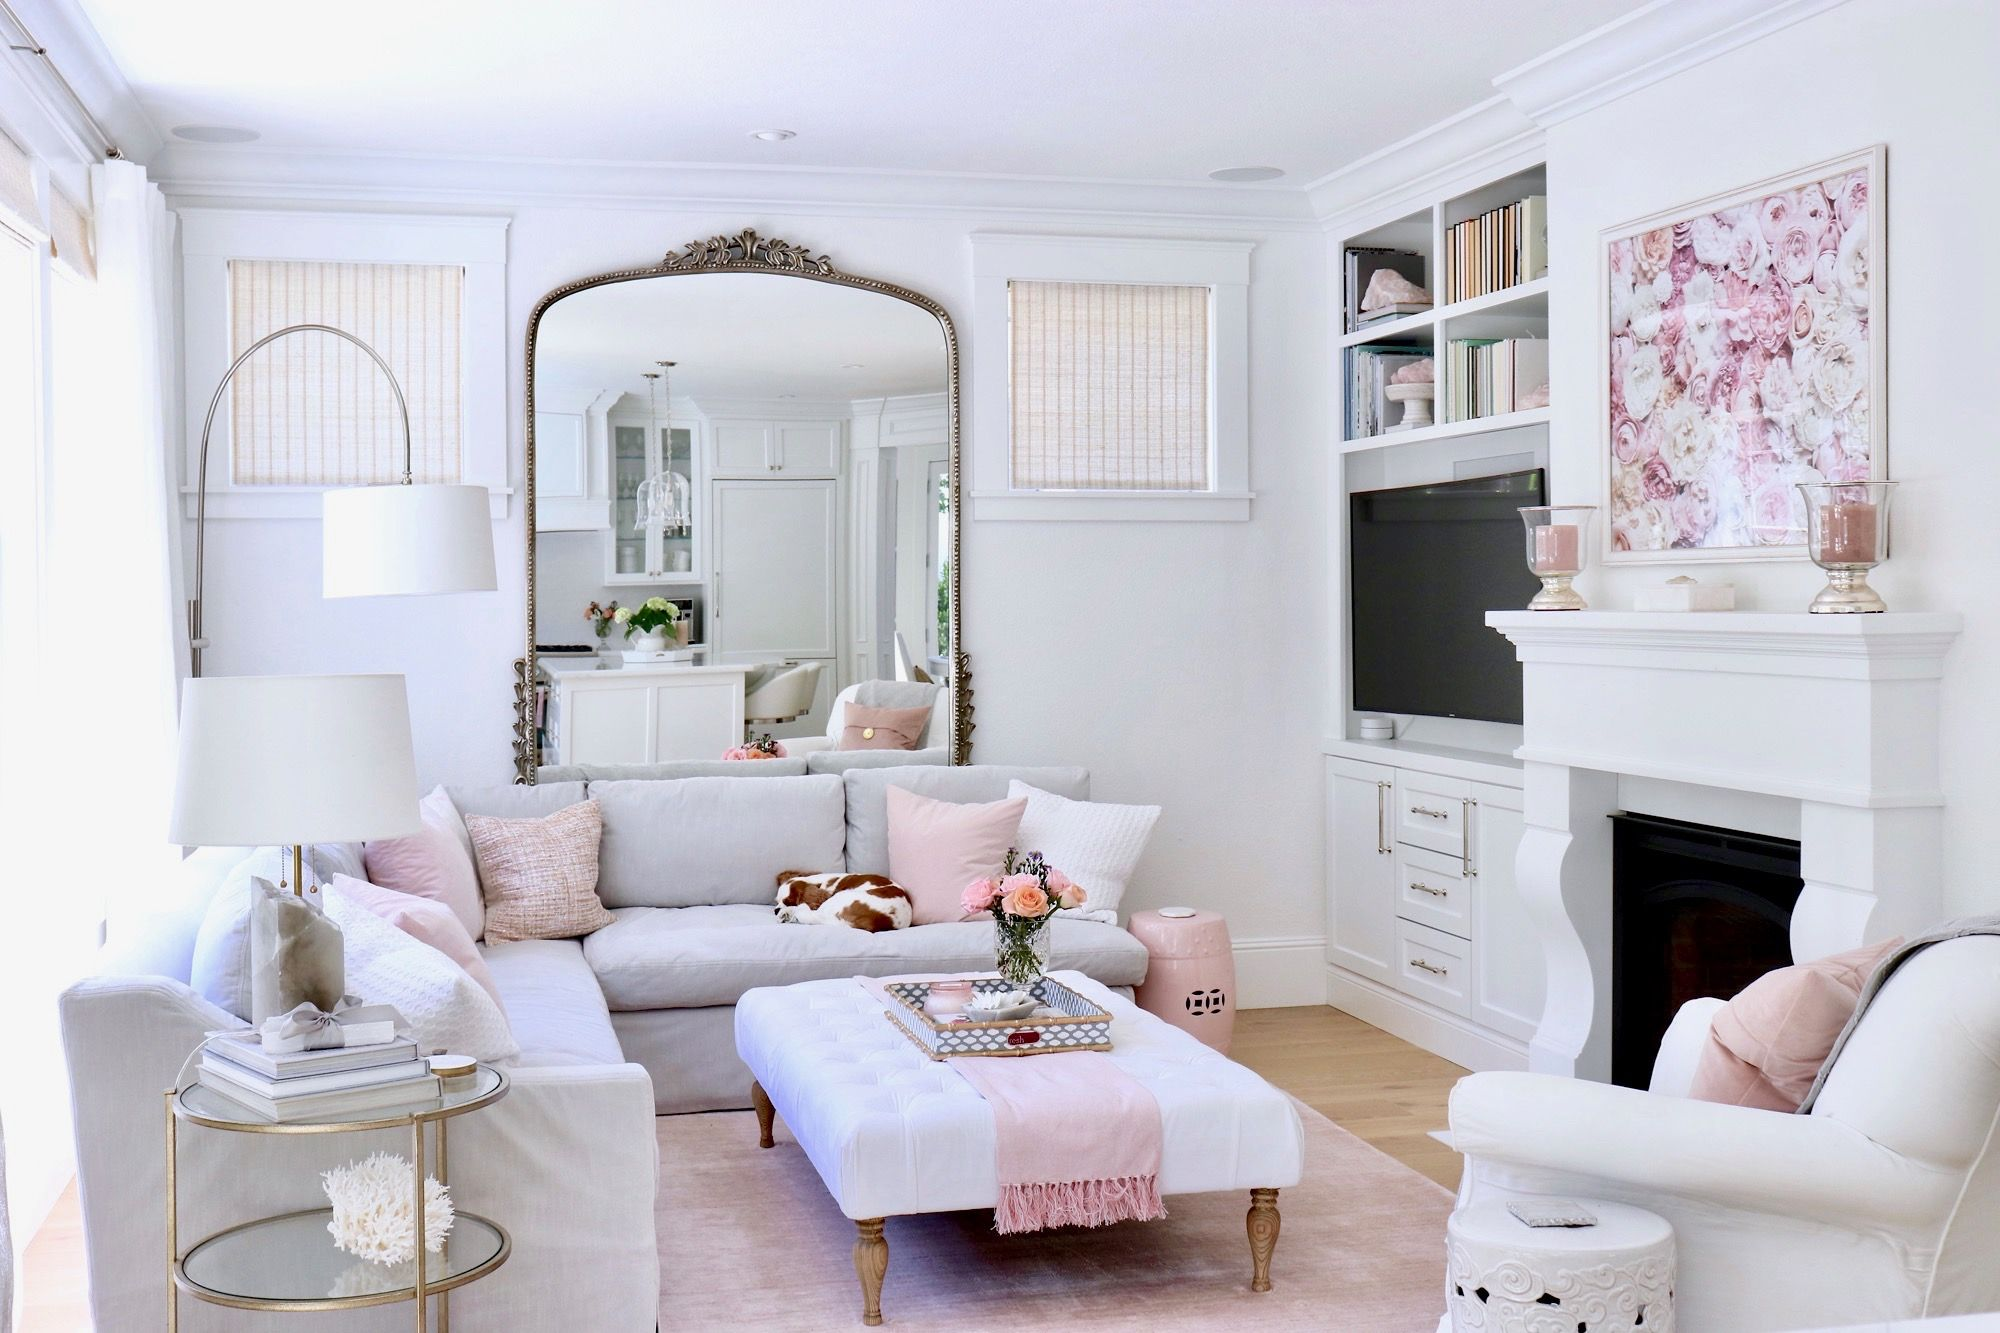 Loveliest Looks Of Summer Home Tour Fashion Decor And Food Summer Living Room Decor Living Room Decor Curtains Living Room Remodel #summer #living #room #curtains